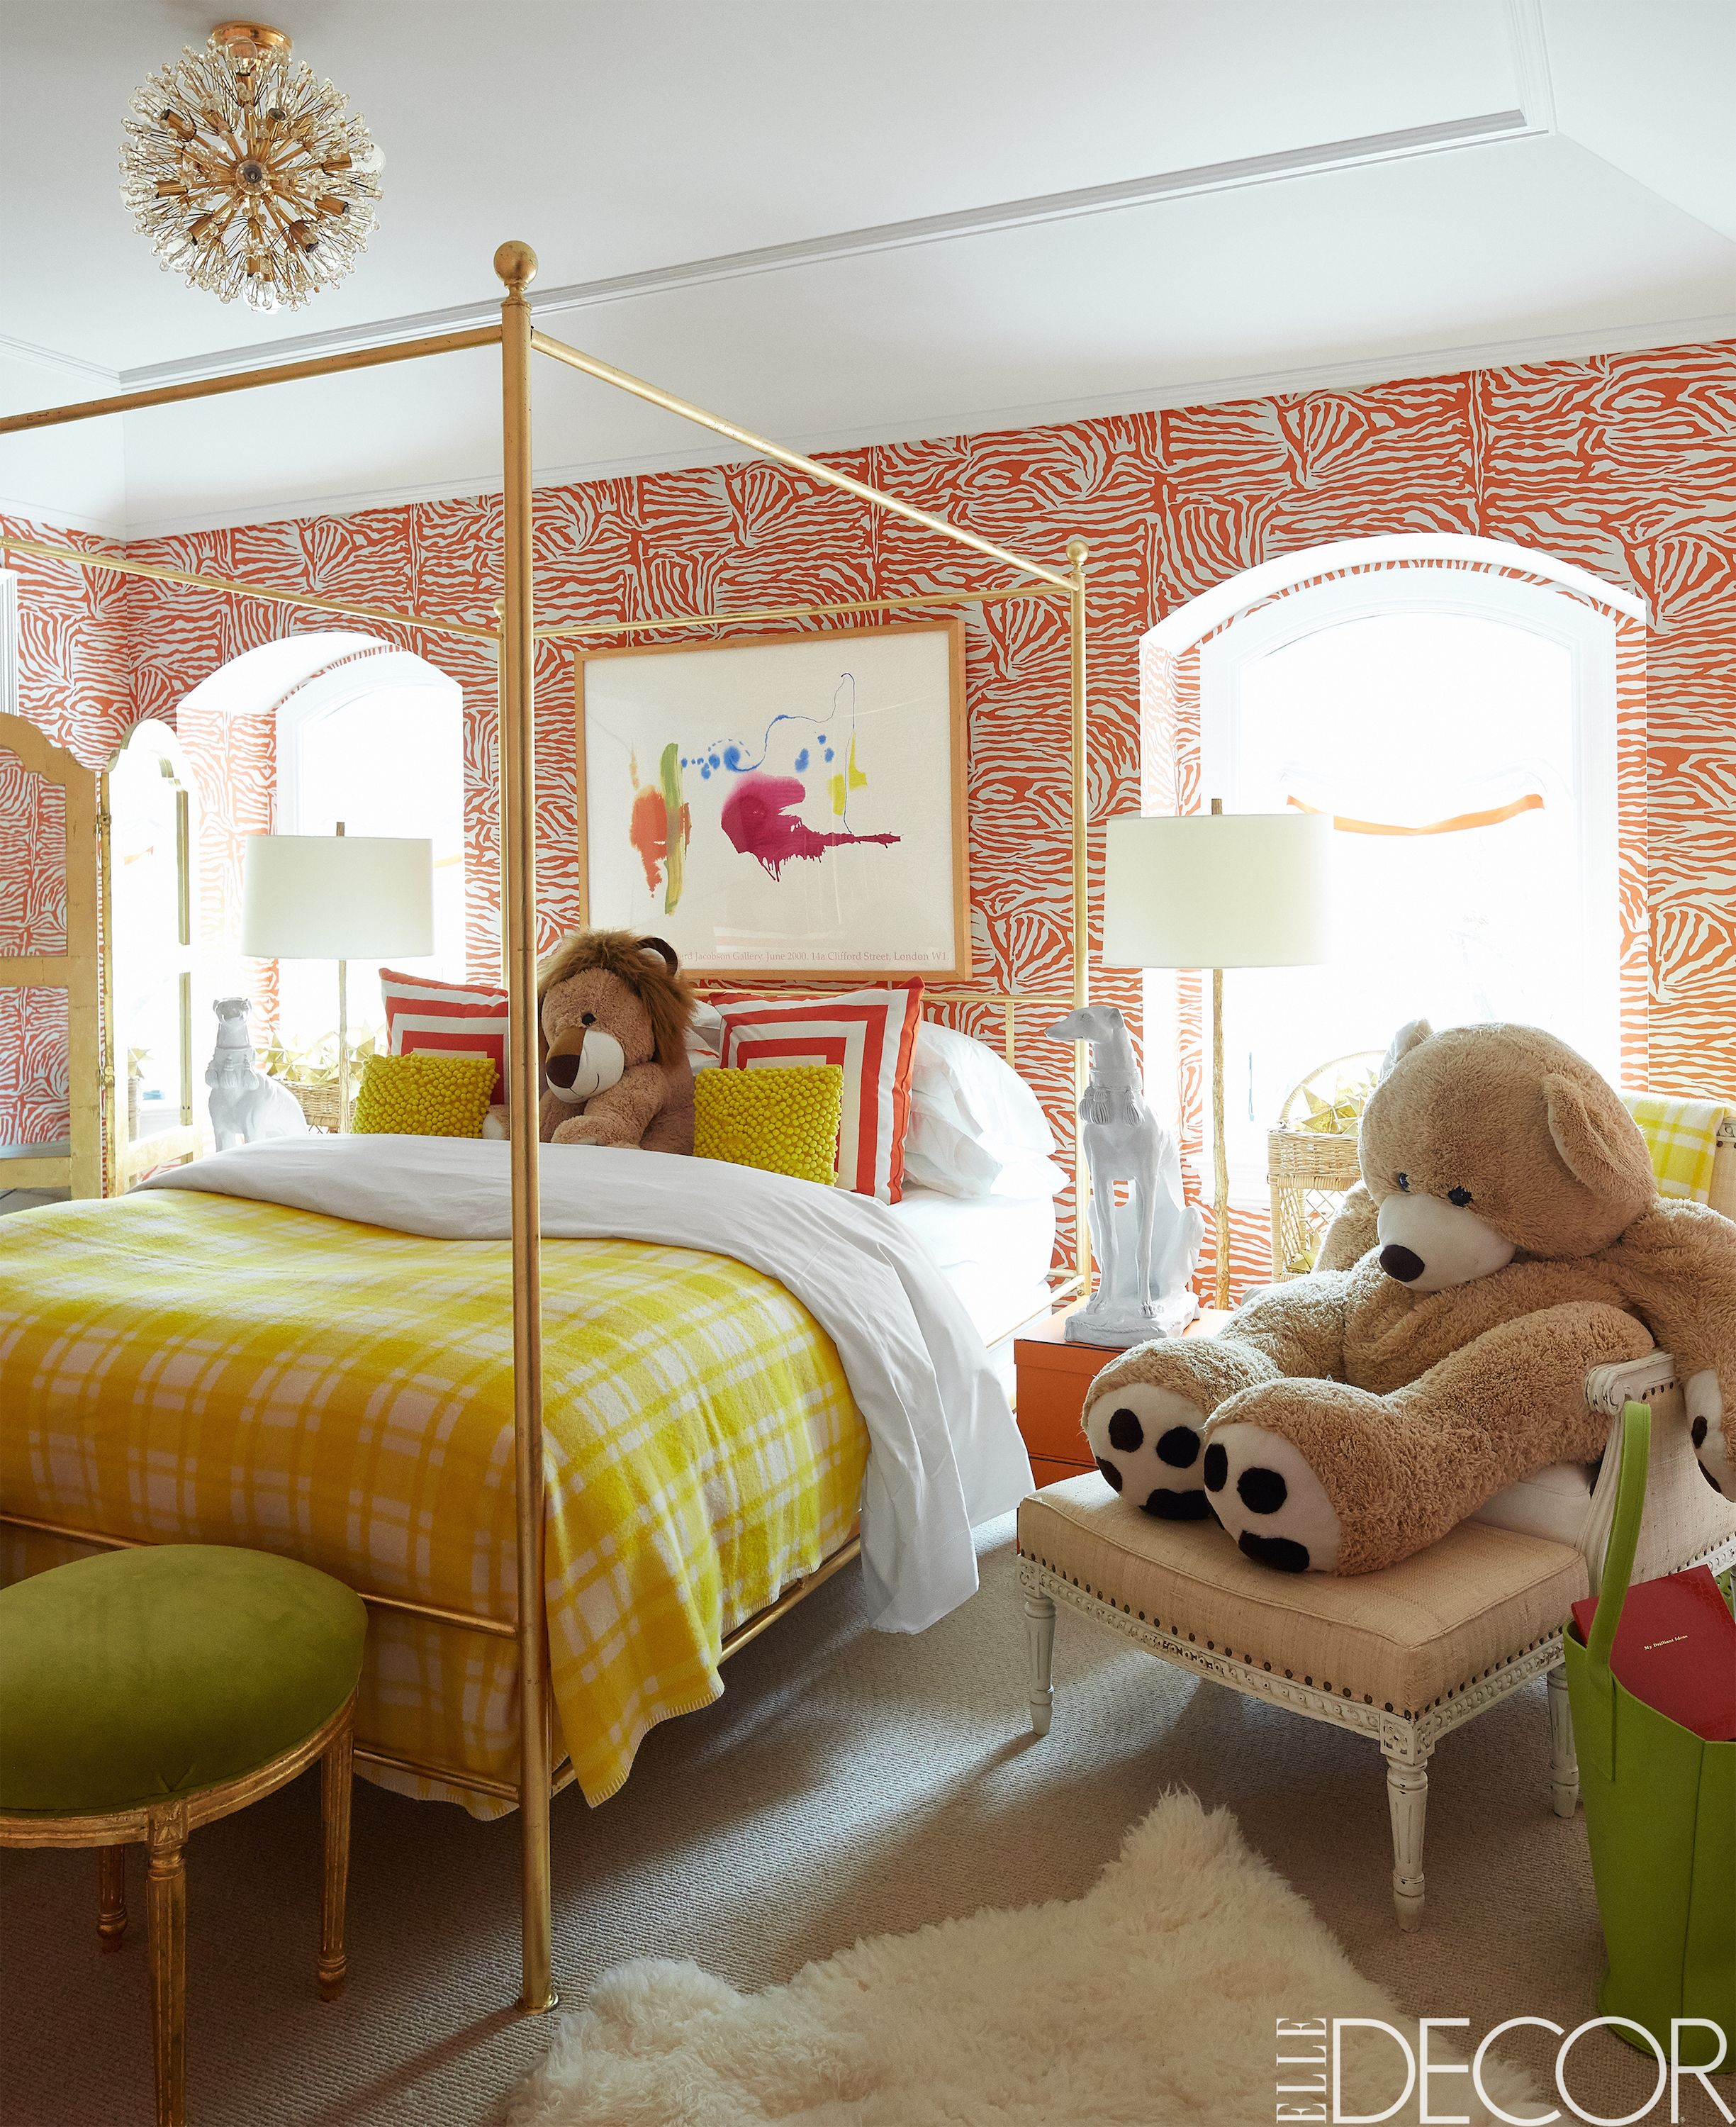 Bedroom decor ideas for girls - Bedroom Decor Ideas For Girls 29